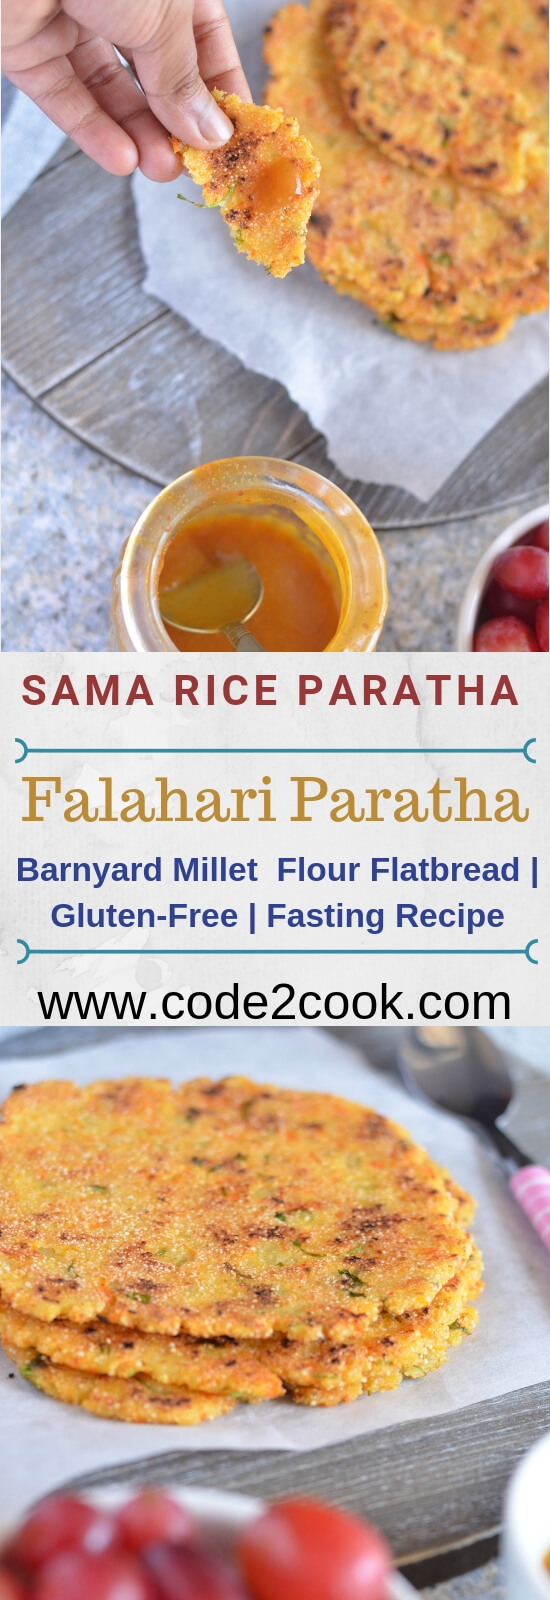 Vrat ka paratha or sama rice paratha is easy and low calories fasting or upvas recipe. This is prepared on fasting days including Navratri, Ekadshi, Janamashtmi. Sama rice paratha is very nutritious, healthy, filling and gluten-free.